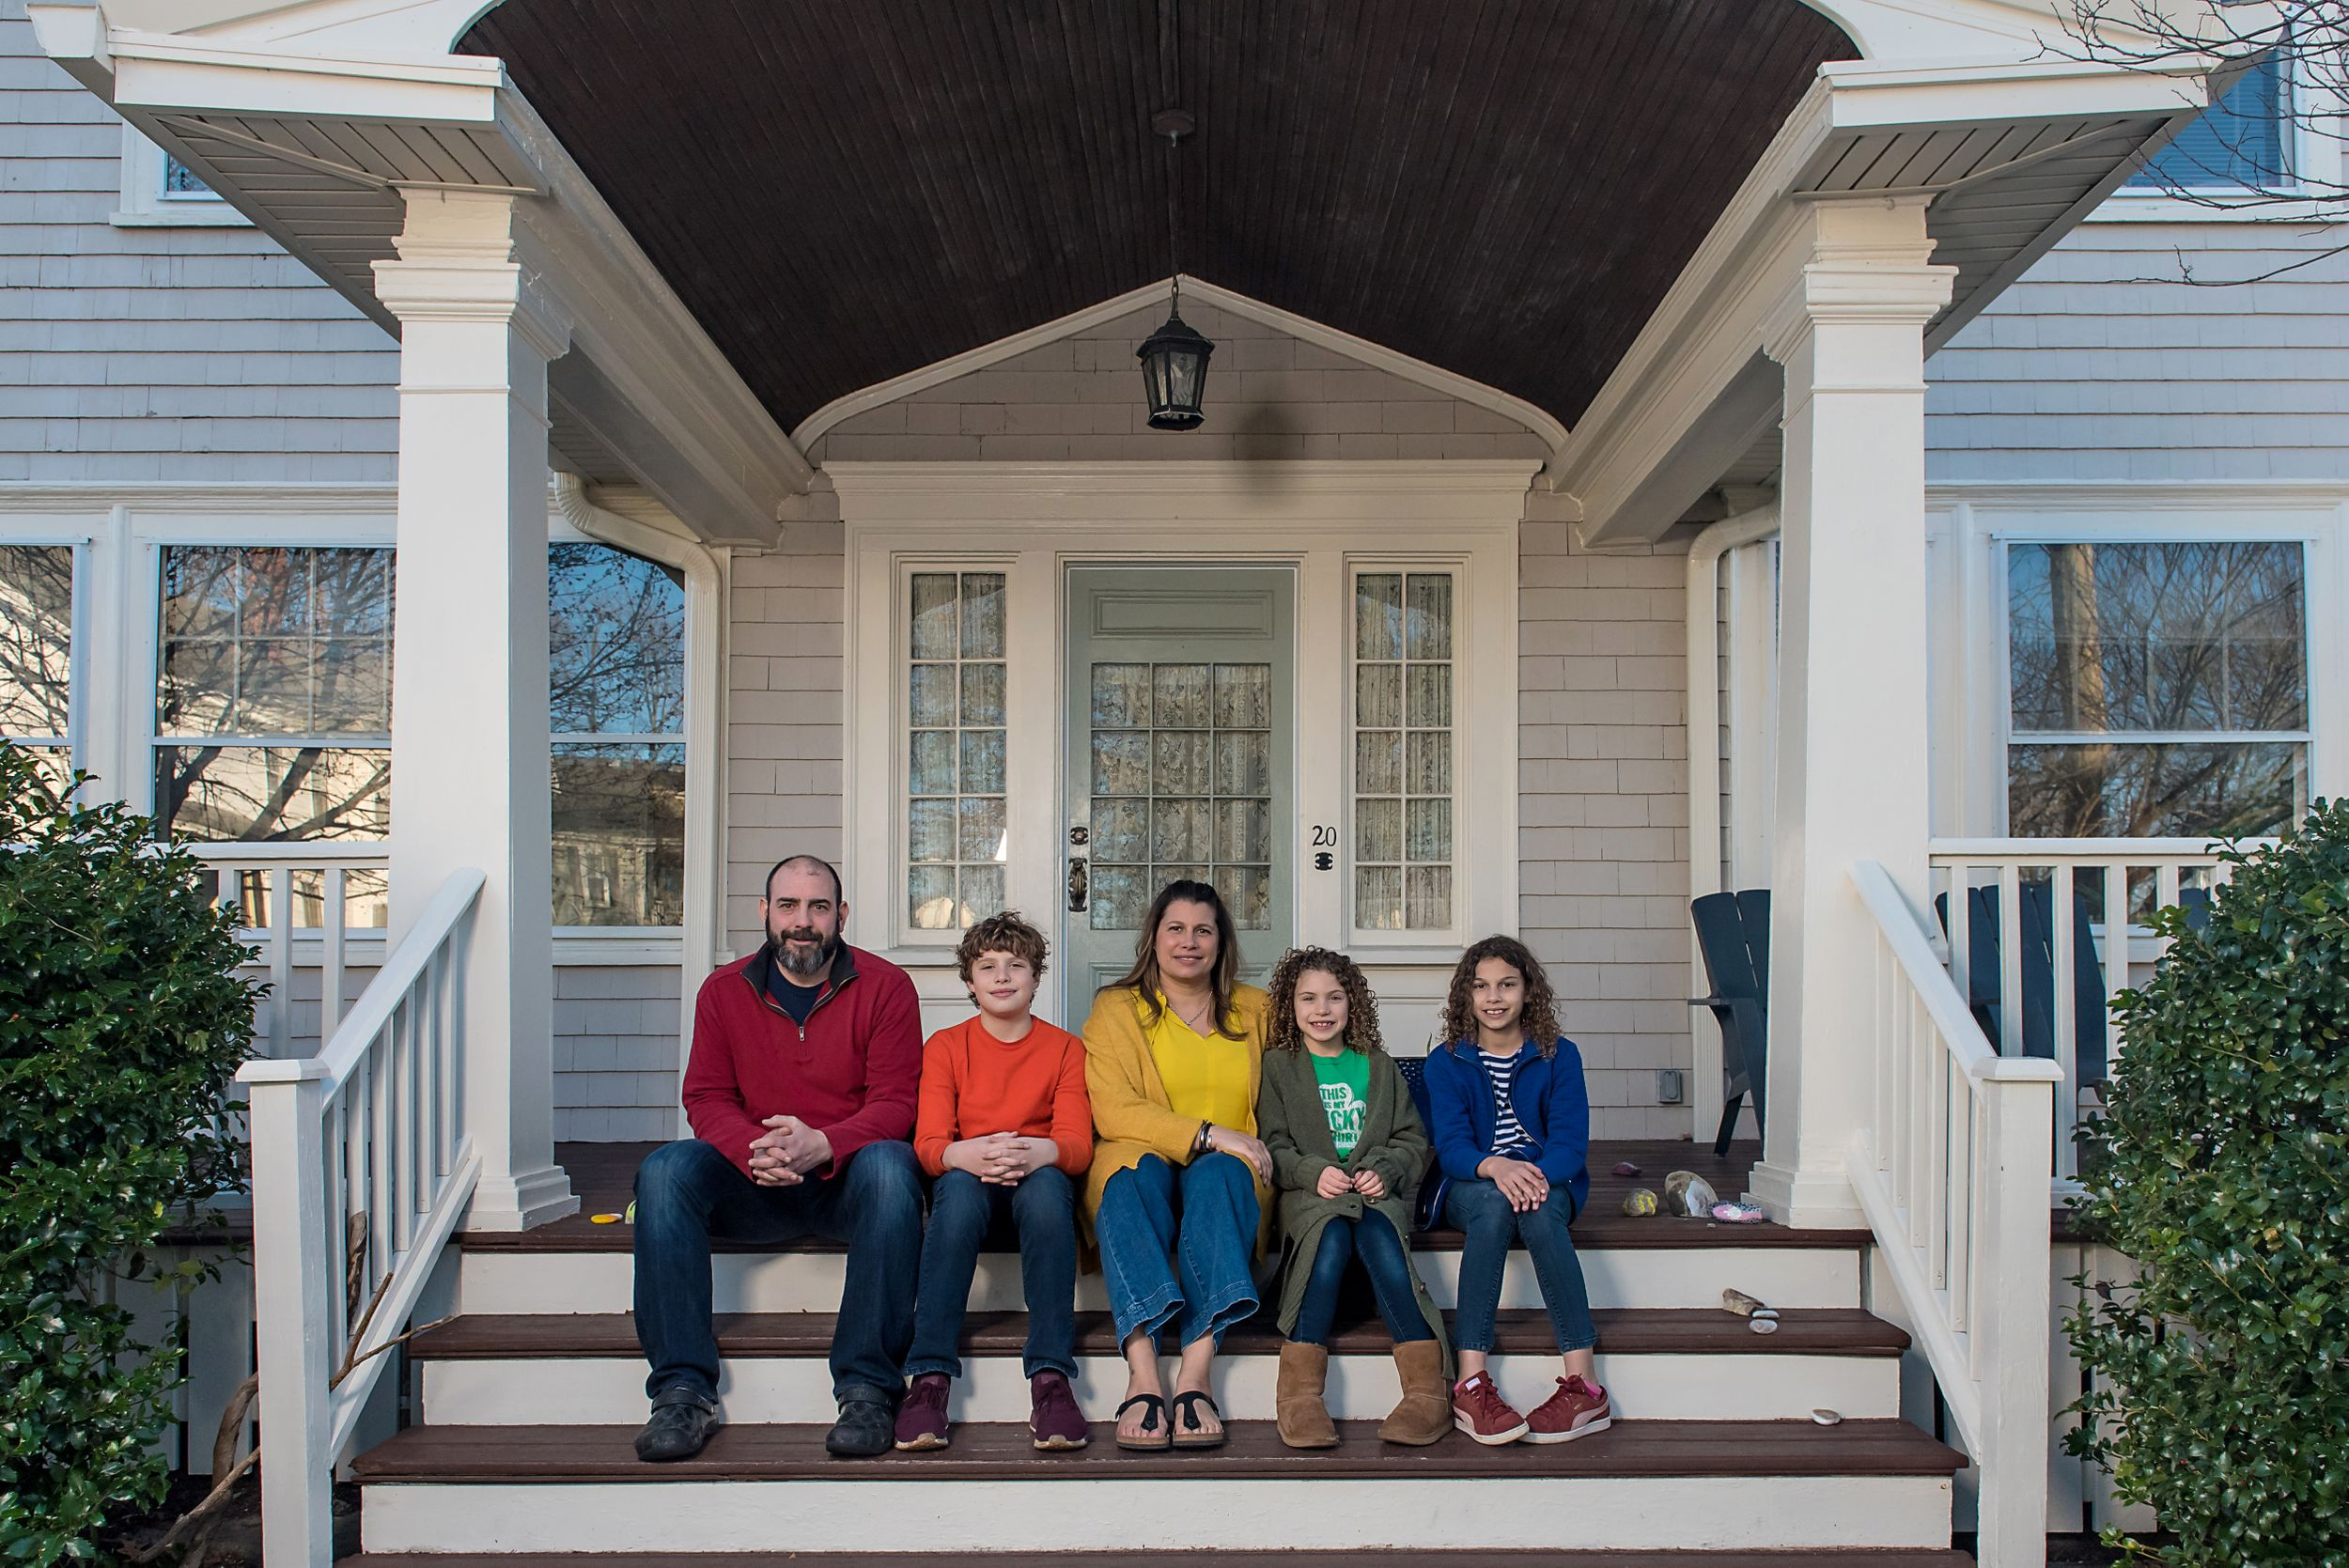 The Tasty owner's Mike and Nina Peters at home with their children in Plymouth MA